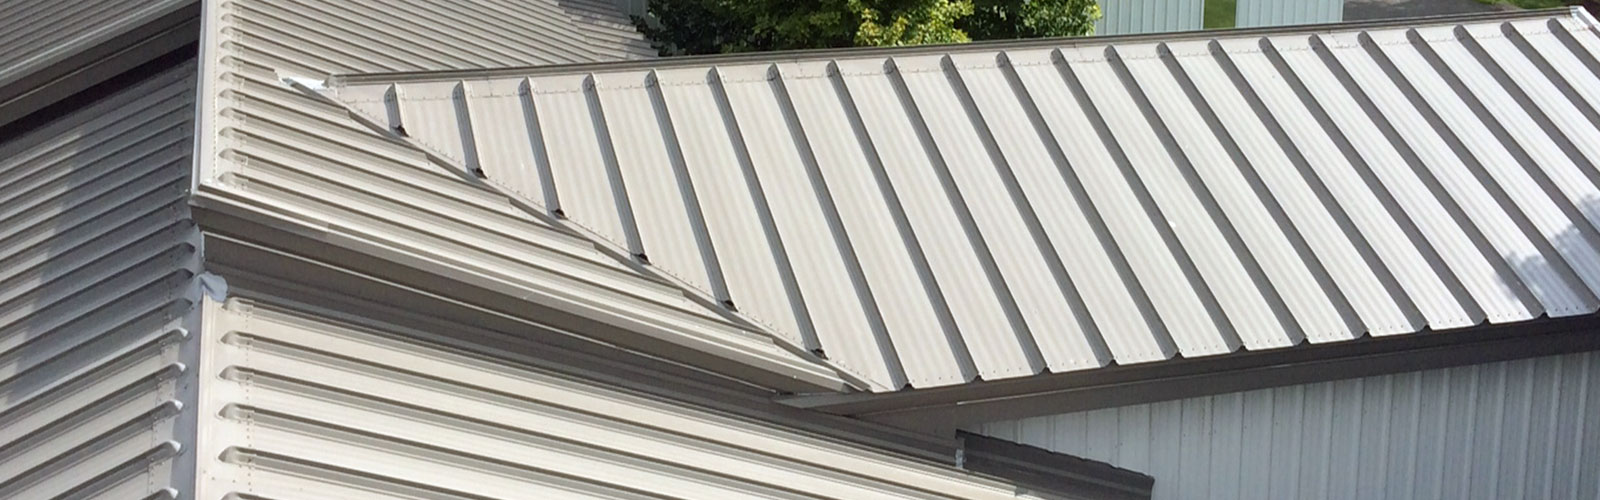 CSI Roofing Images